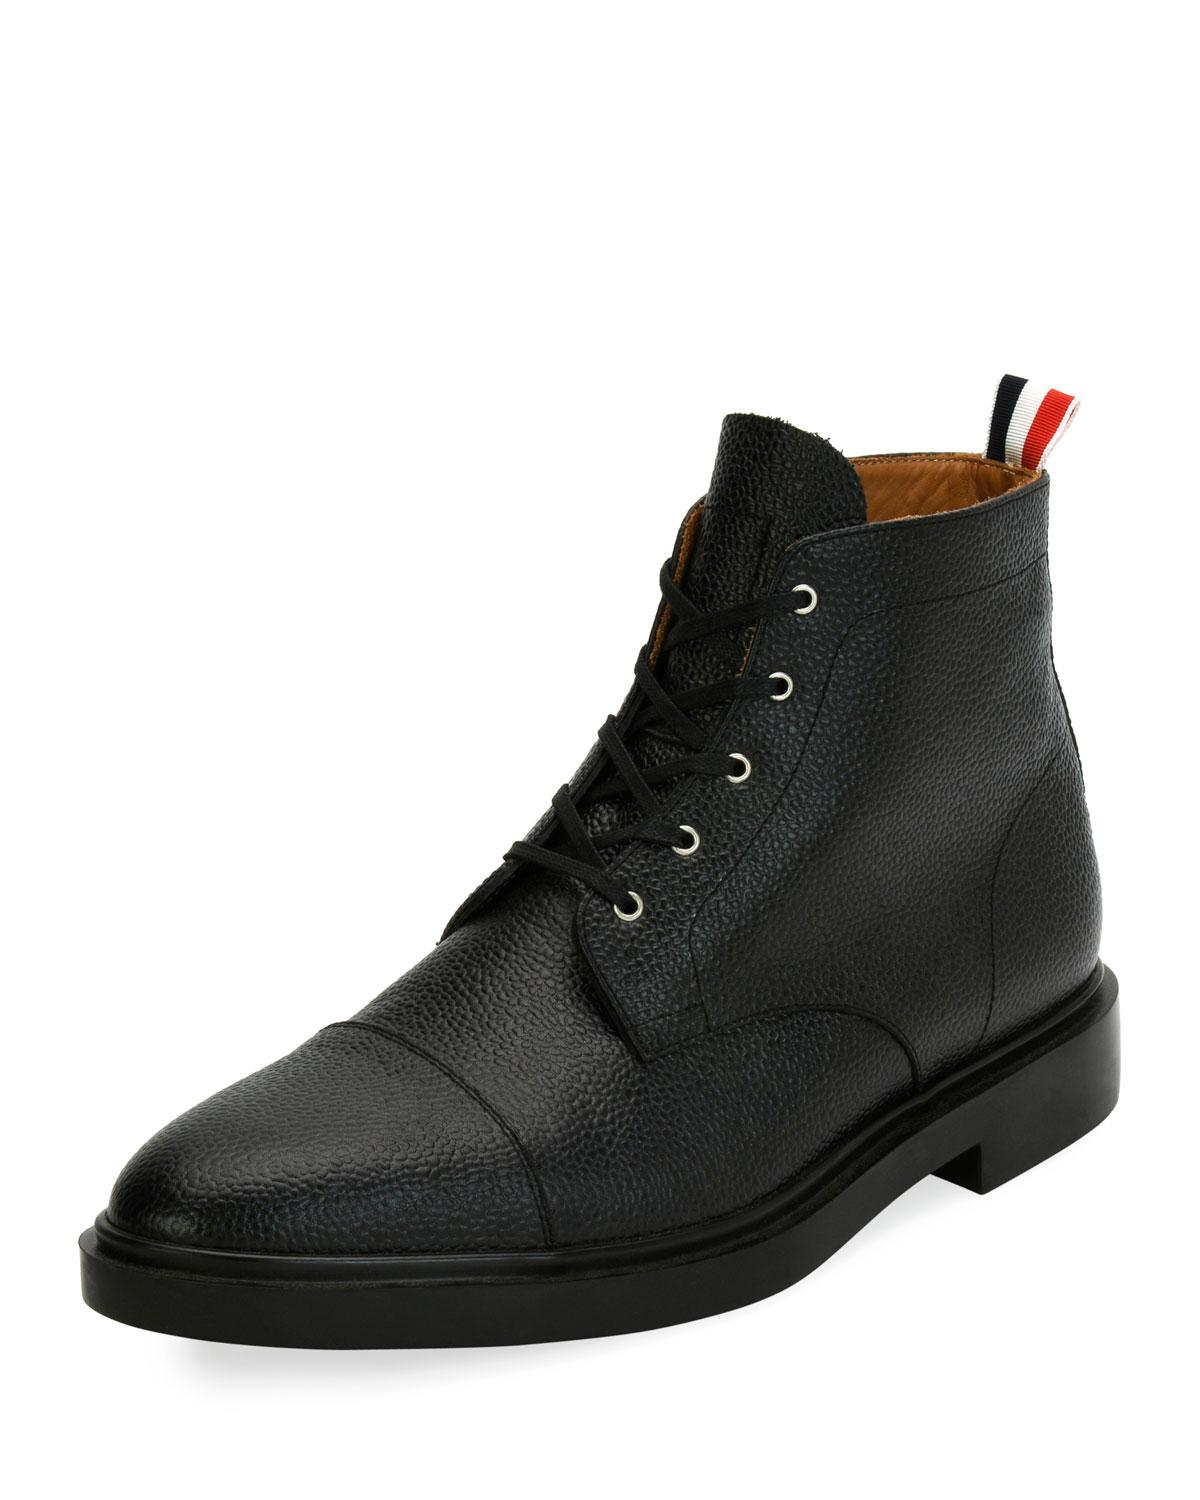 Black Cropped Blucher Lace-Up Boots Thom Browne Footlocker Finishline Cheap Online Clearance Manchester Great Sale Clearance Online Fake Big Sale Cheap Online Sast For Sale OQEq0Hv